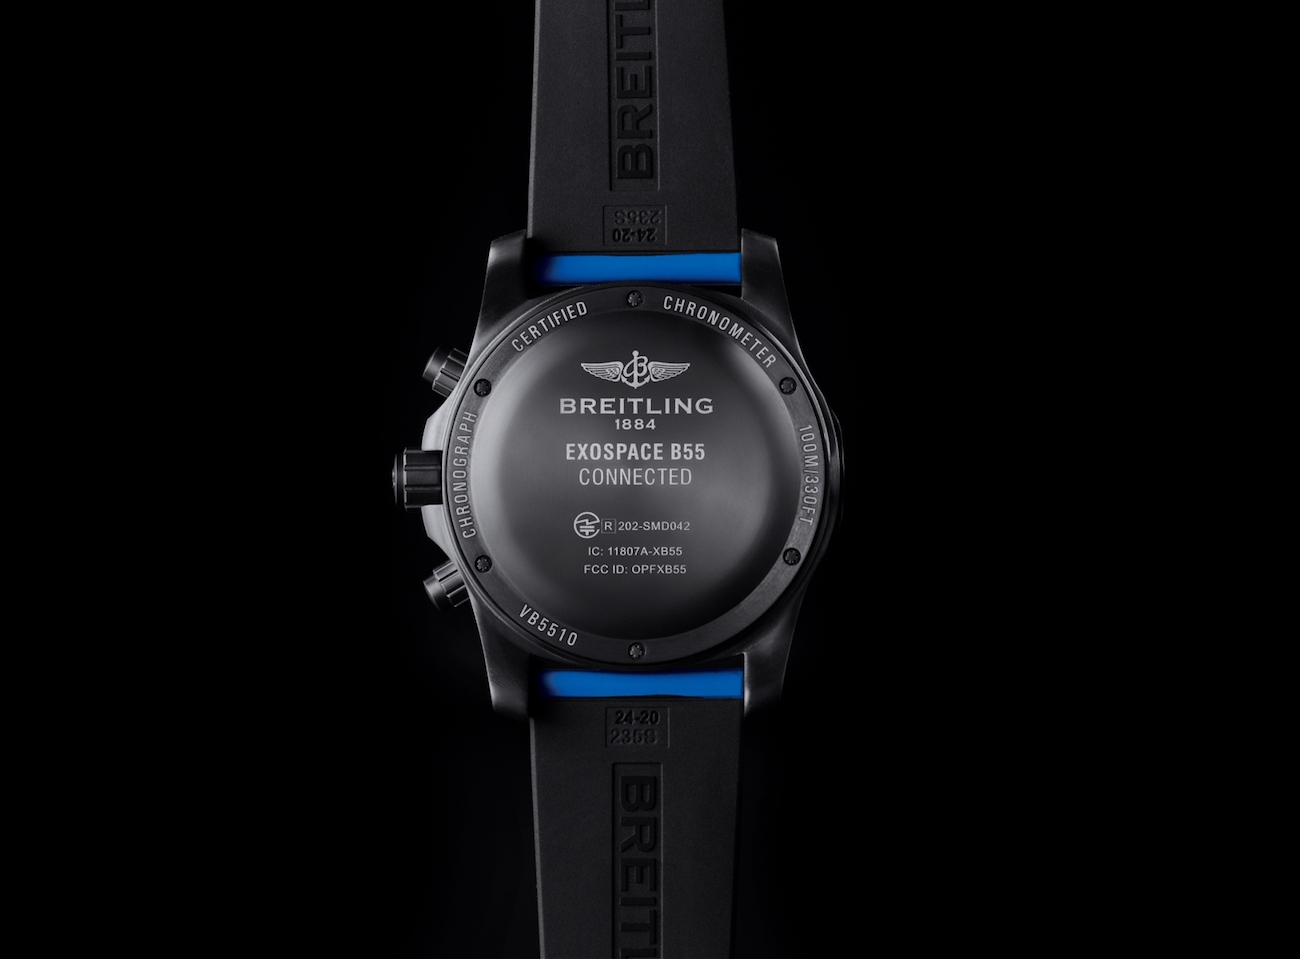 Breitling Exospace B55 Connected Smartwatch